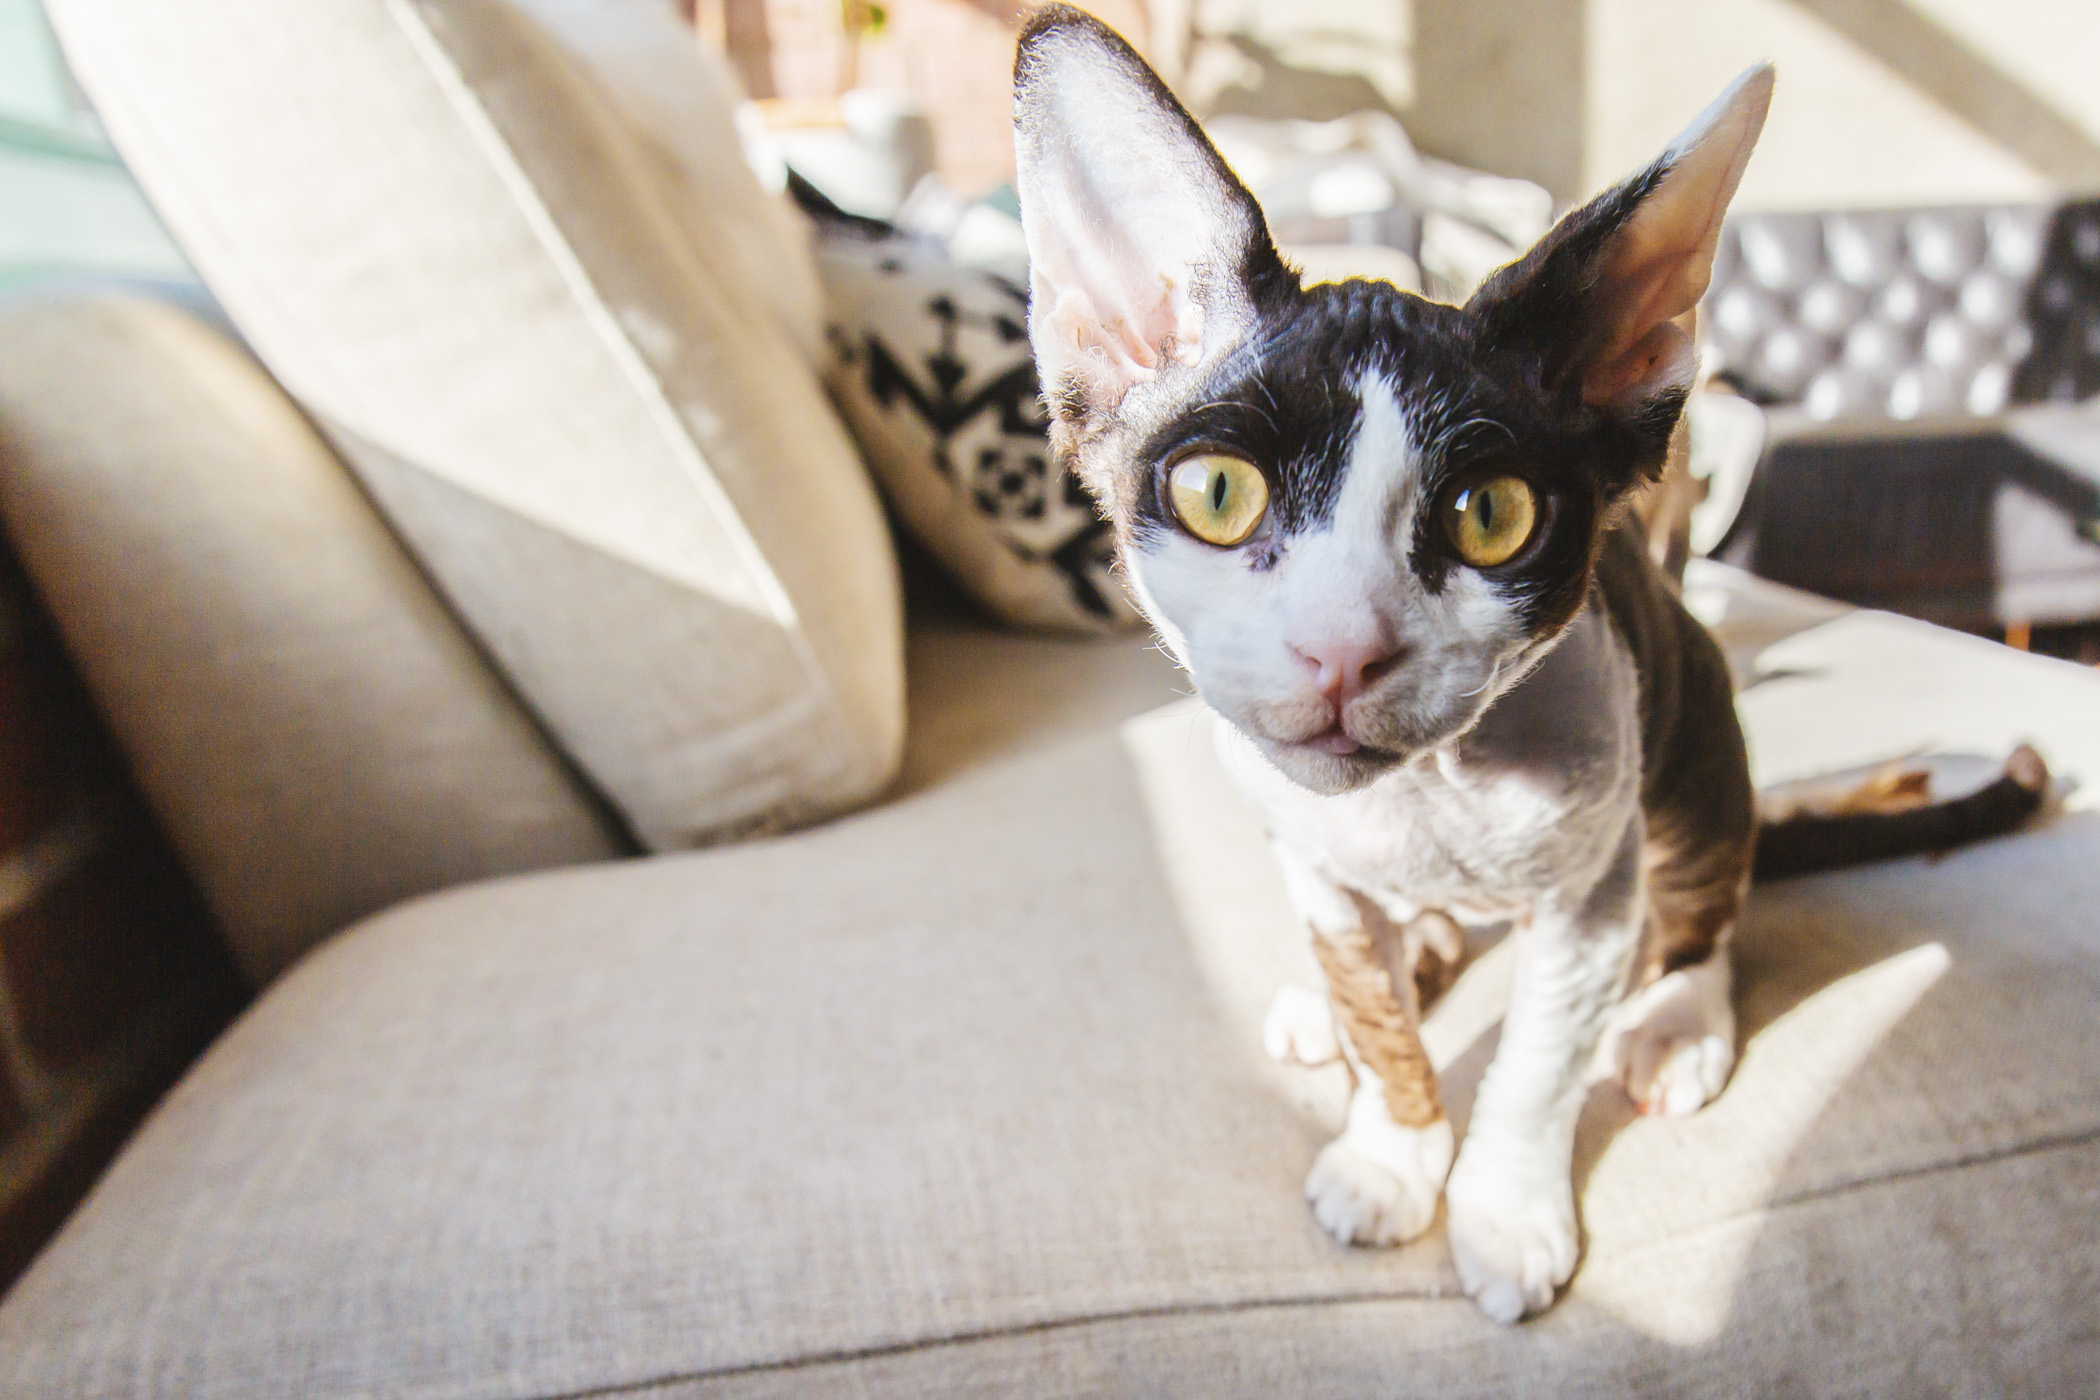 <p>Meet Lindsey Buckingham, the Devon Rex. LB is almost five months old and likes toys with bells, shoelaces and being held. He dislikes when his big sister cleans him, when humans clean him, being left alone and being woken up. You can follow LB's journey through life on Instagram at @steviethedevonrex.{&nbsp;}The Seattle RUFFined Spotlight is a weekly profile of local pets living and loving life in the PNW. If you or someone you know has a pet you'd like featured, email us at hello@seattlerefined.com or tag #SeattleRUFFined and your furbaby could be the next spotlighted! (Image: Sunita Martini / Seattle Refined).</p>